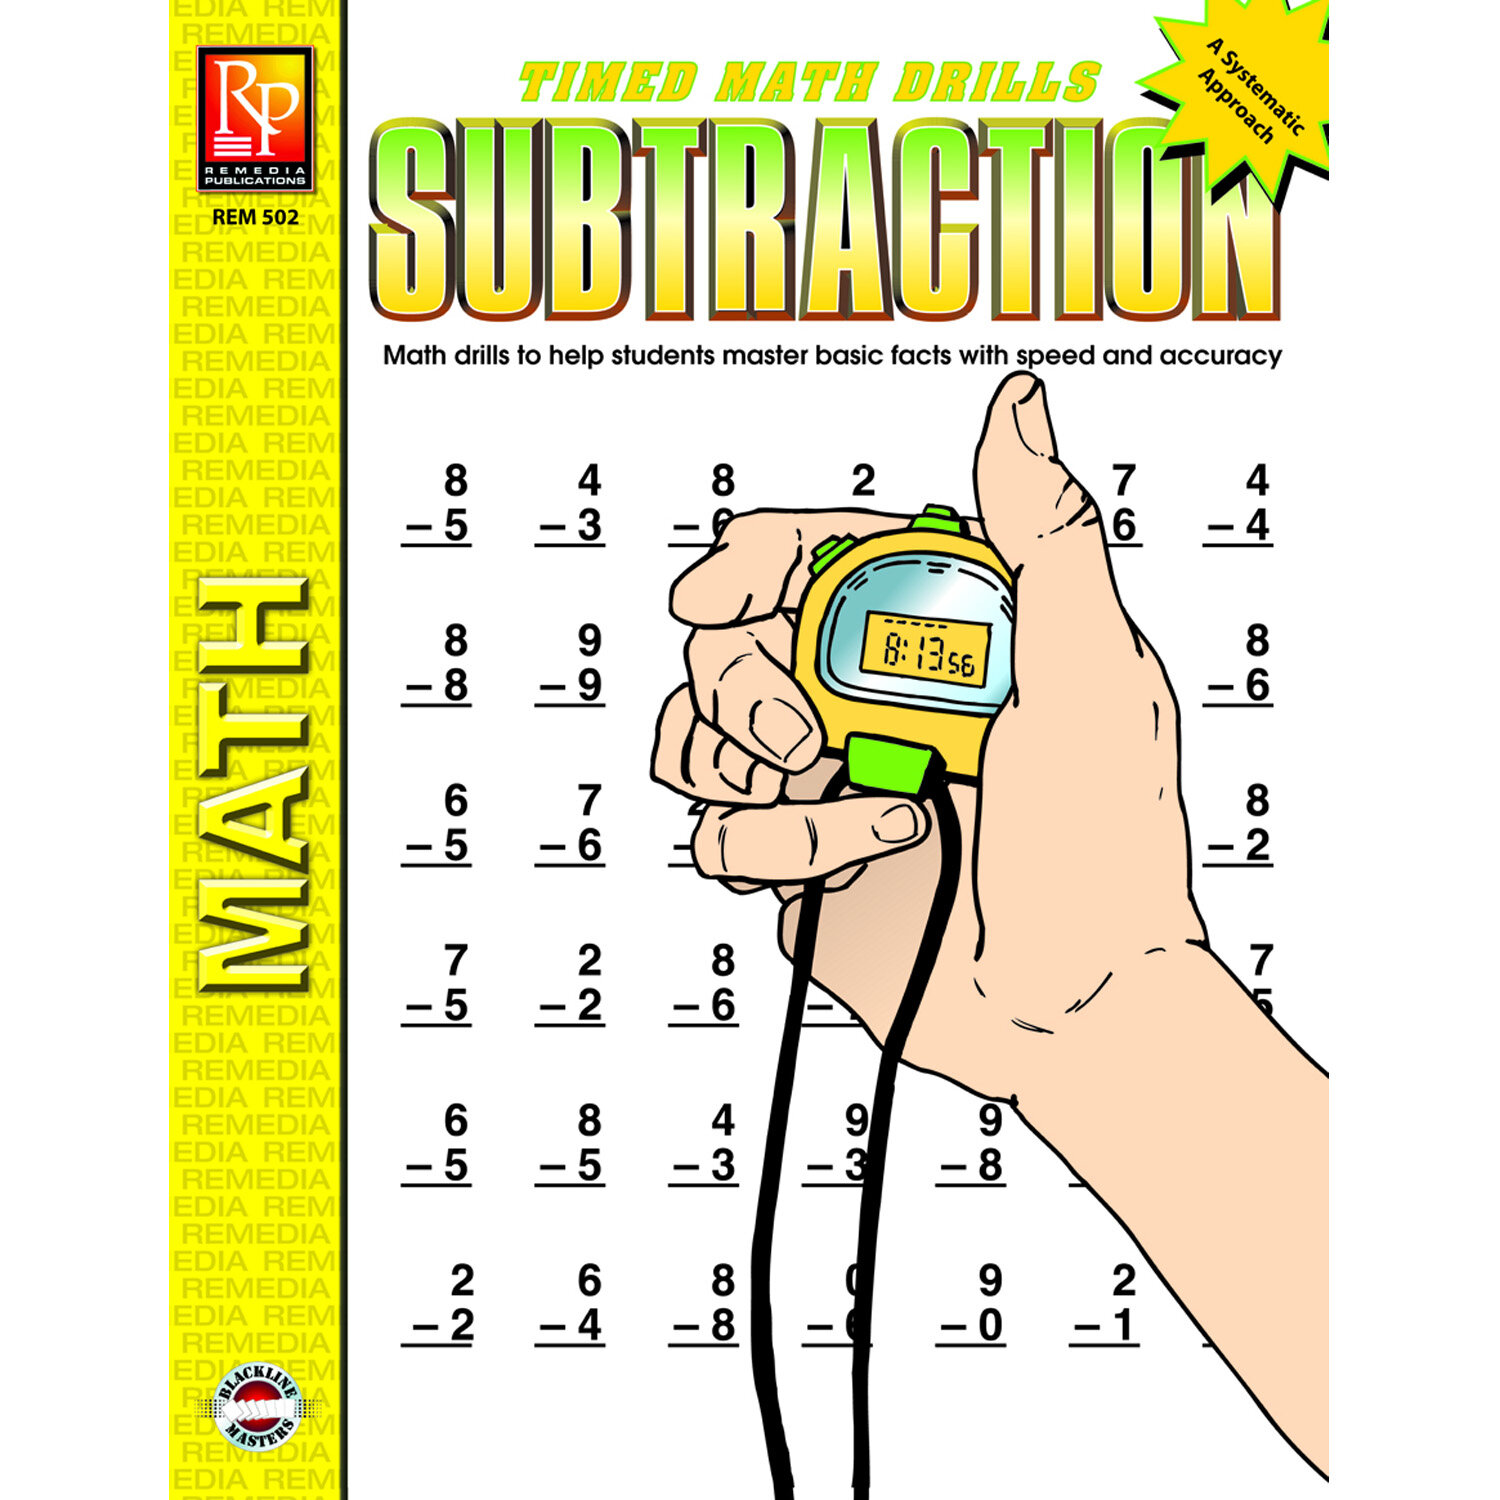 Remedia Publications Timed Math Facts Subtraction Book | Wayfair